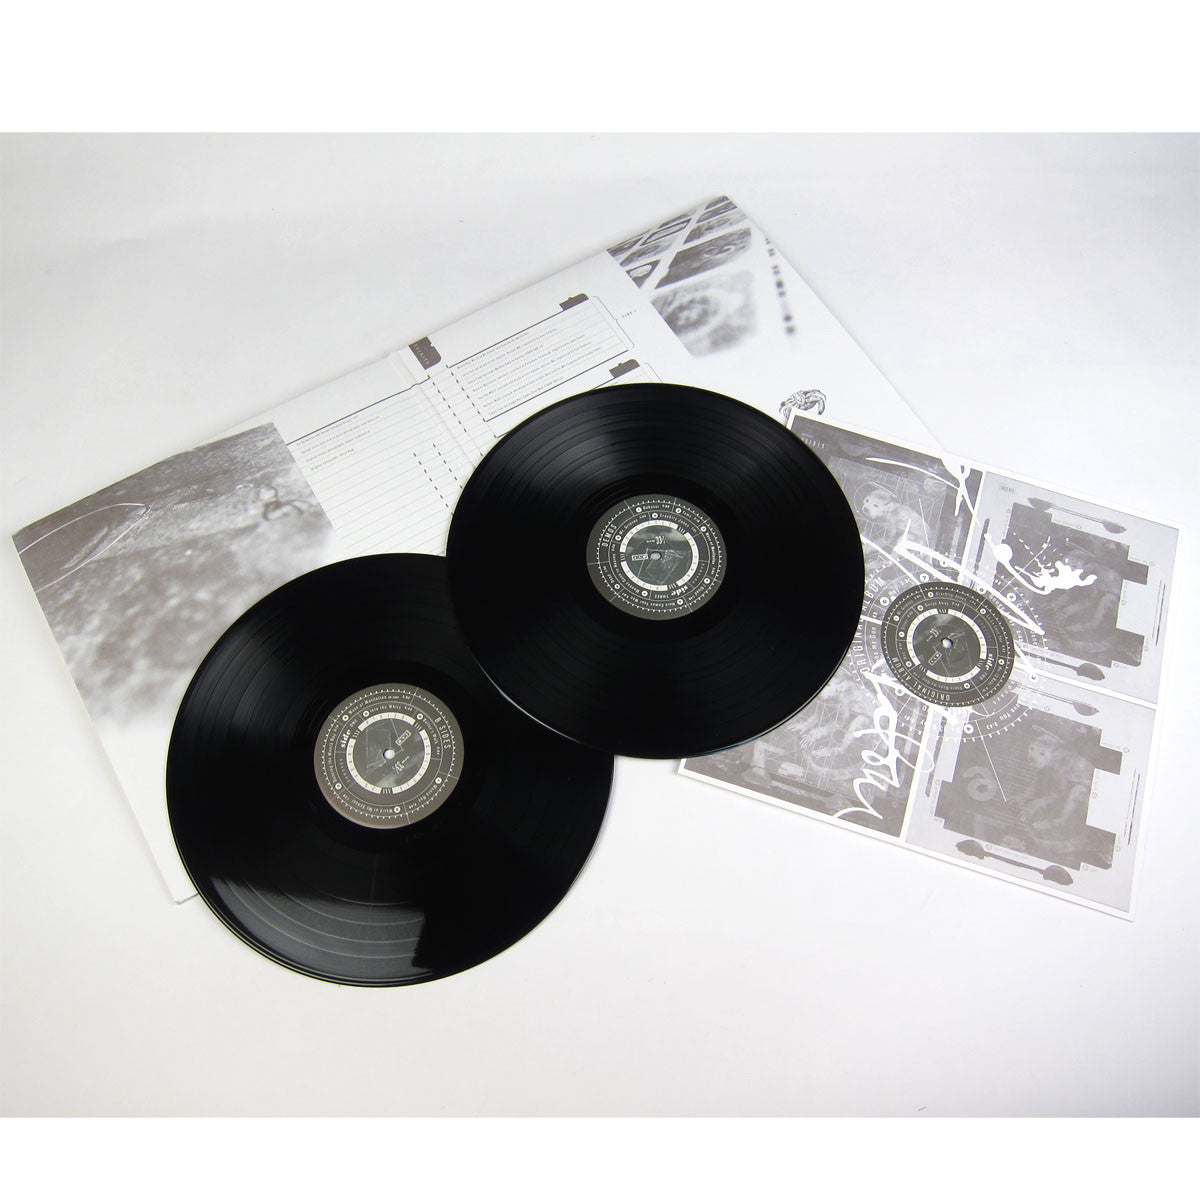 Pixies: Doolittle 25 - B-Sides, Peel Sessions & Demos (180g, Free MP3) Vinyl 3LP detail